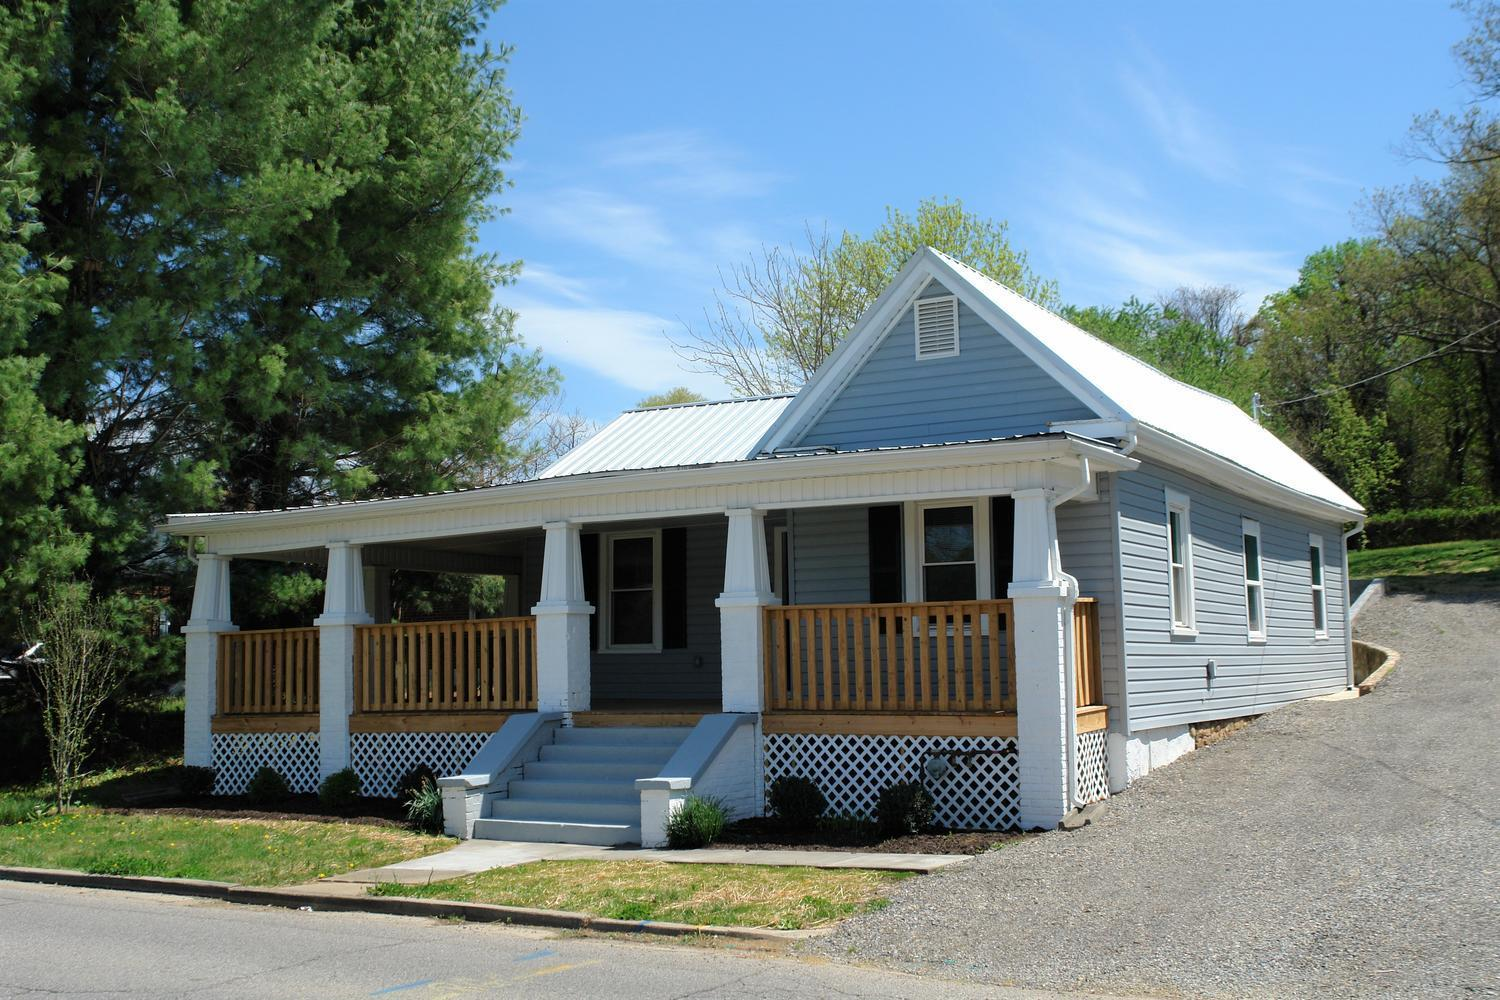 Residential for Sale at 418 Craig Ave Salem, Virginia 24153 United States